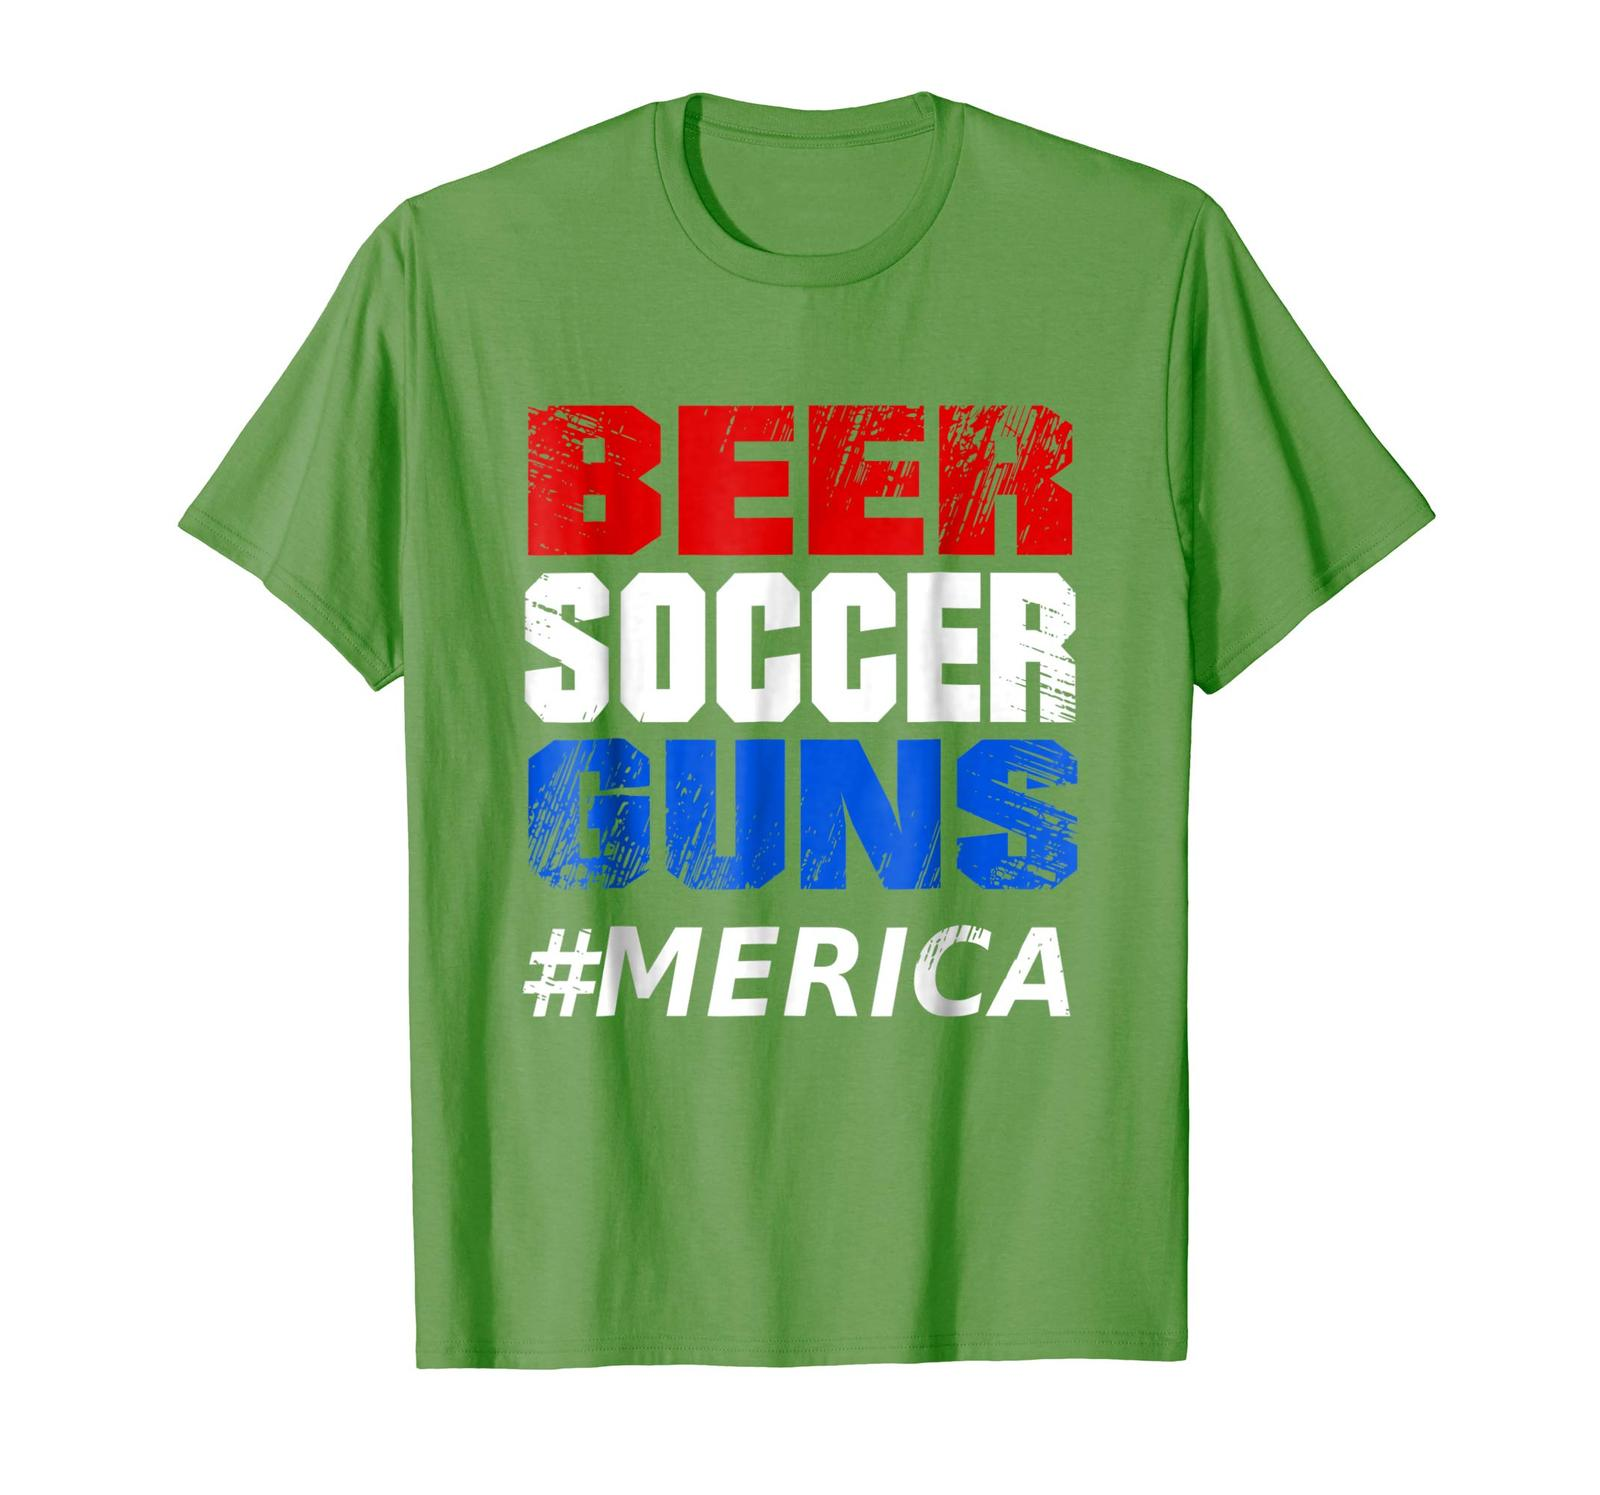 Primary image for New Shirts - Beer Soccer Guns #Merica Funny T-Shirt Gift Men